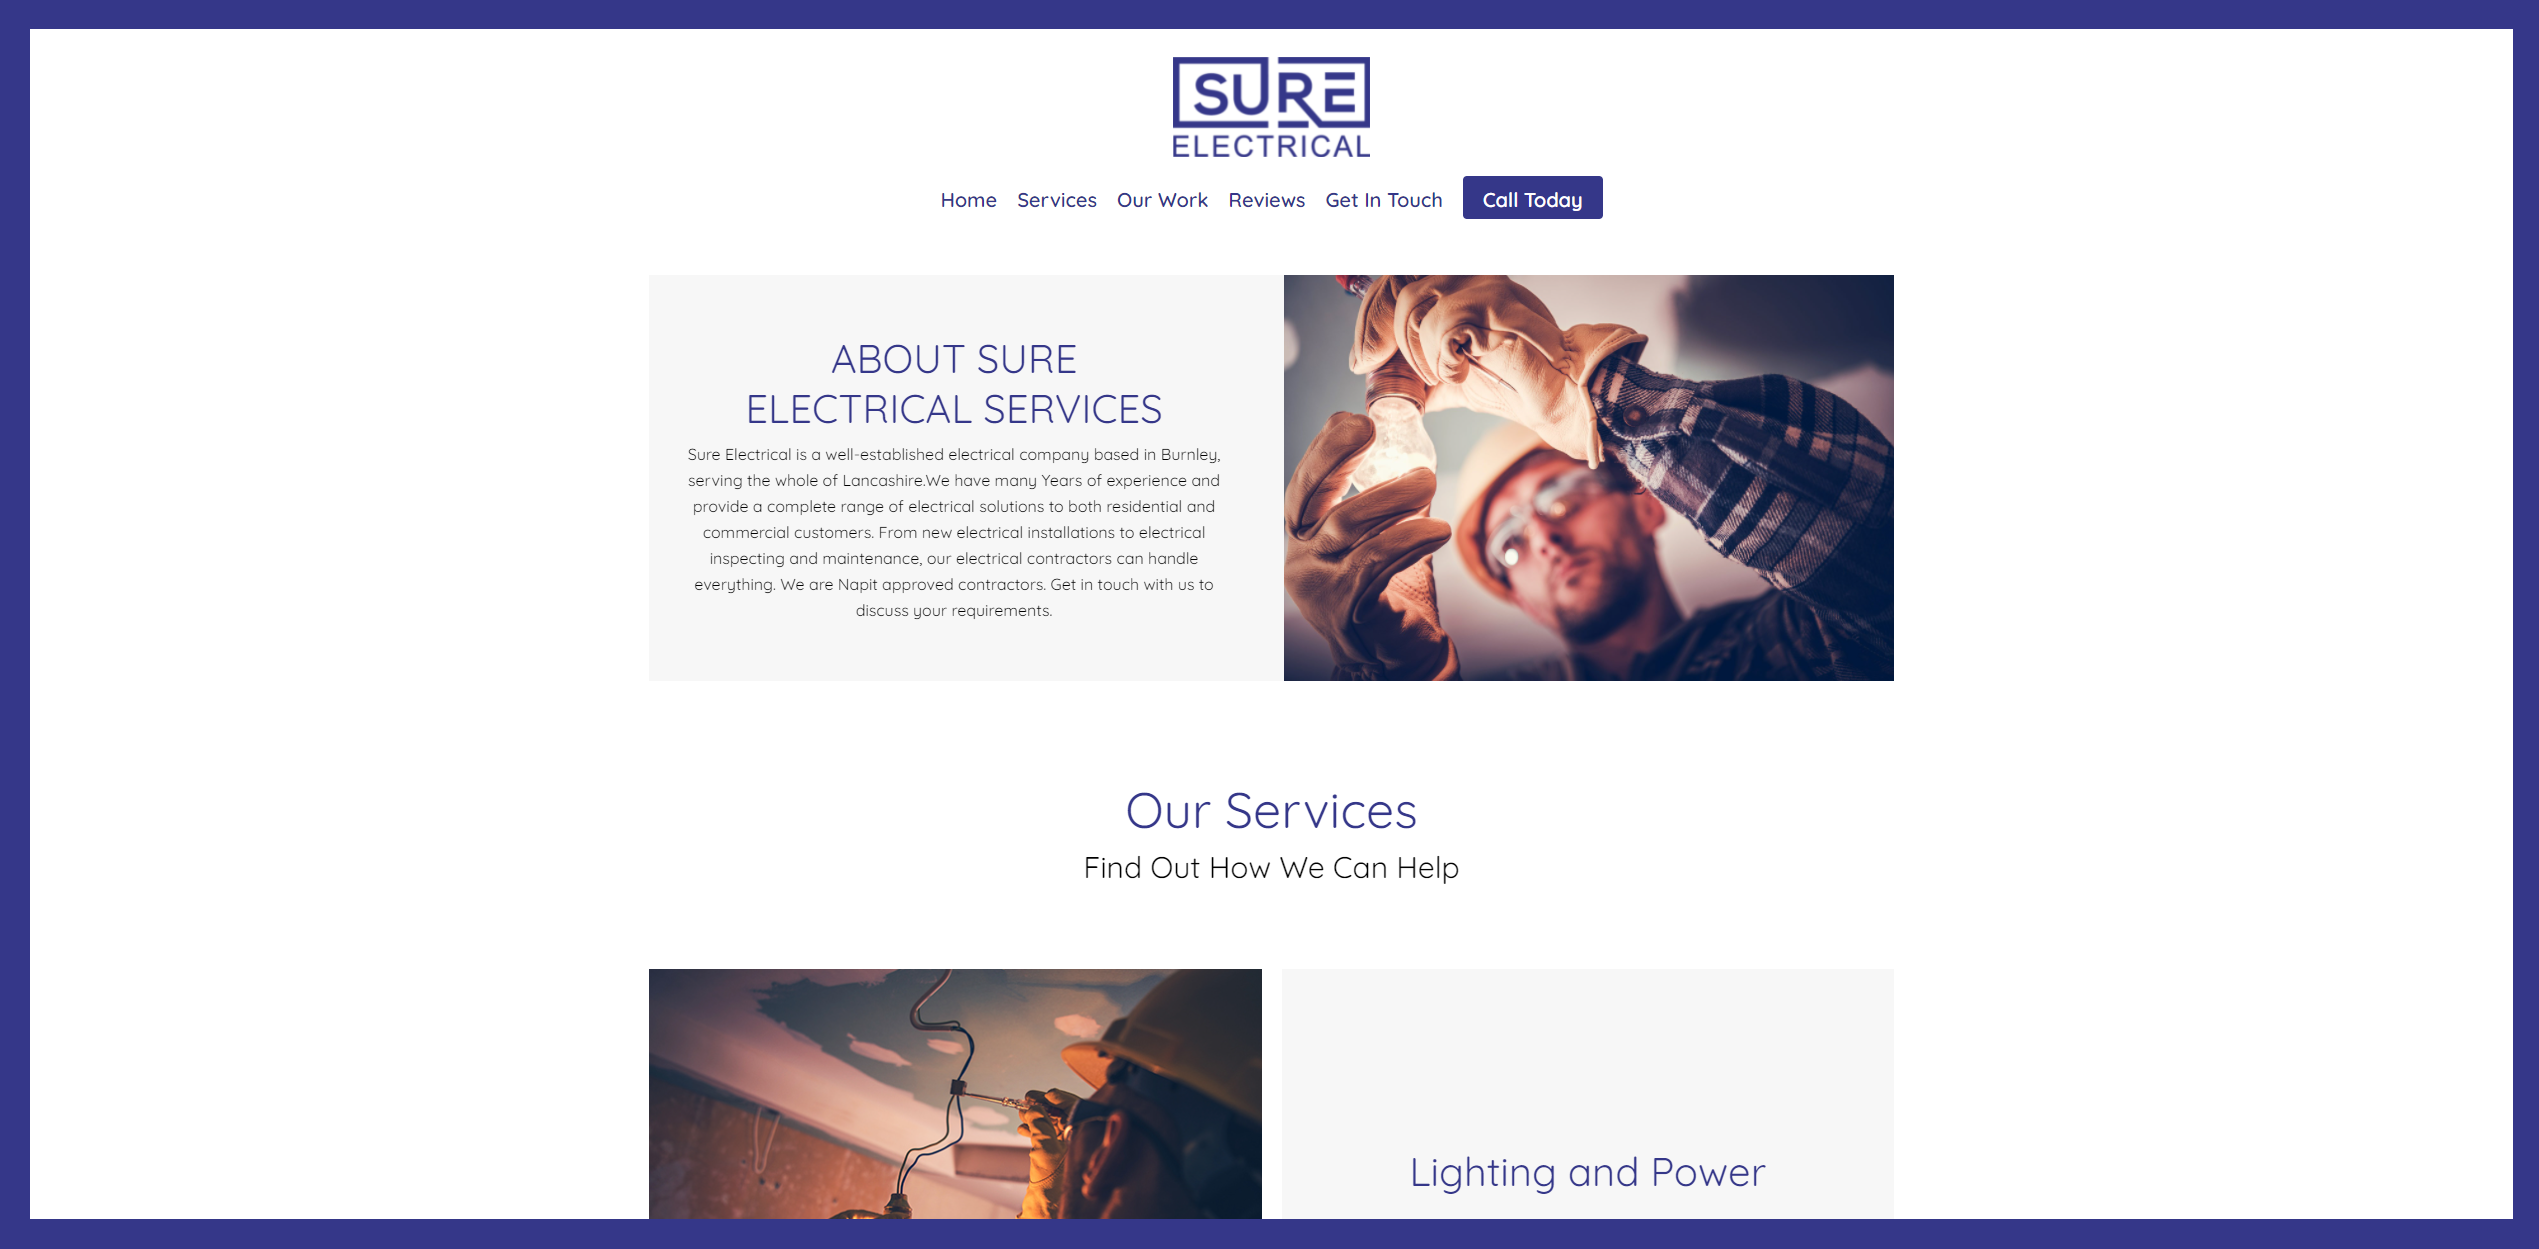 Sure Electrical